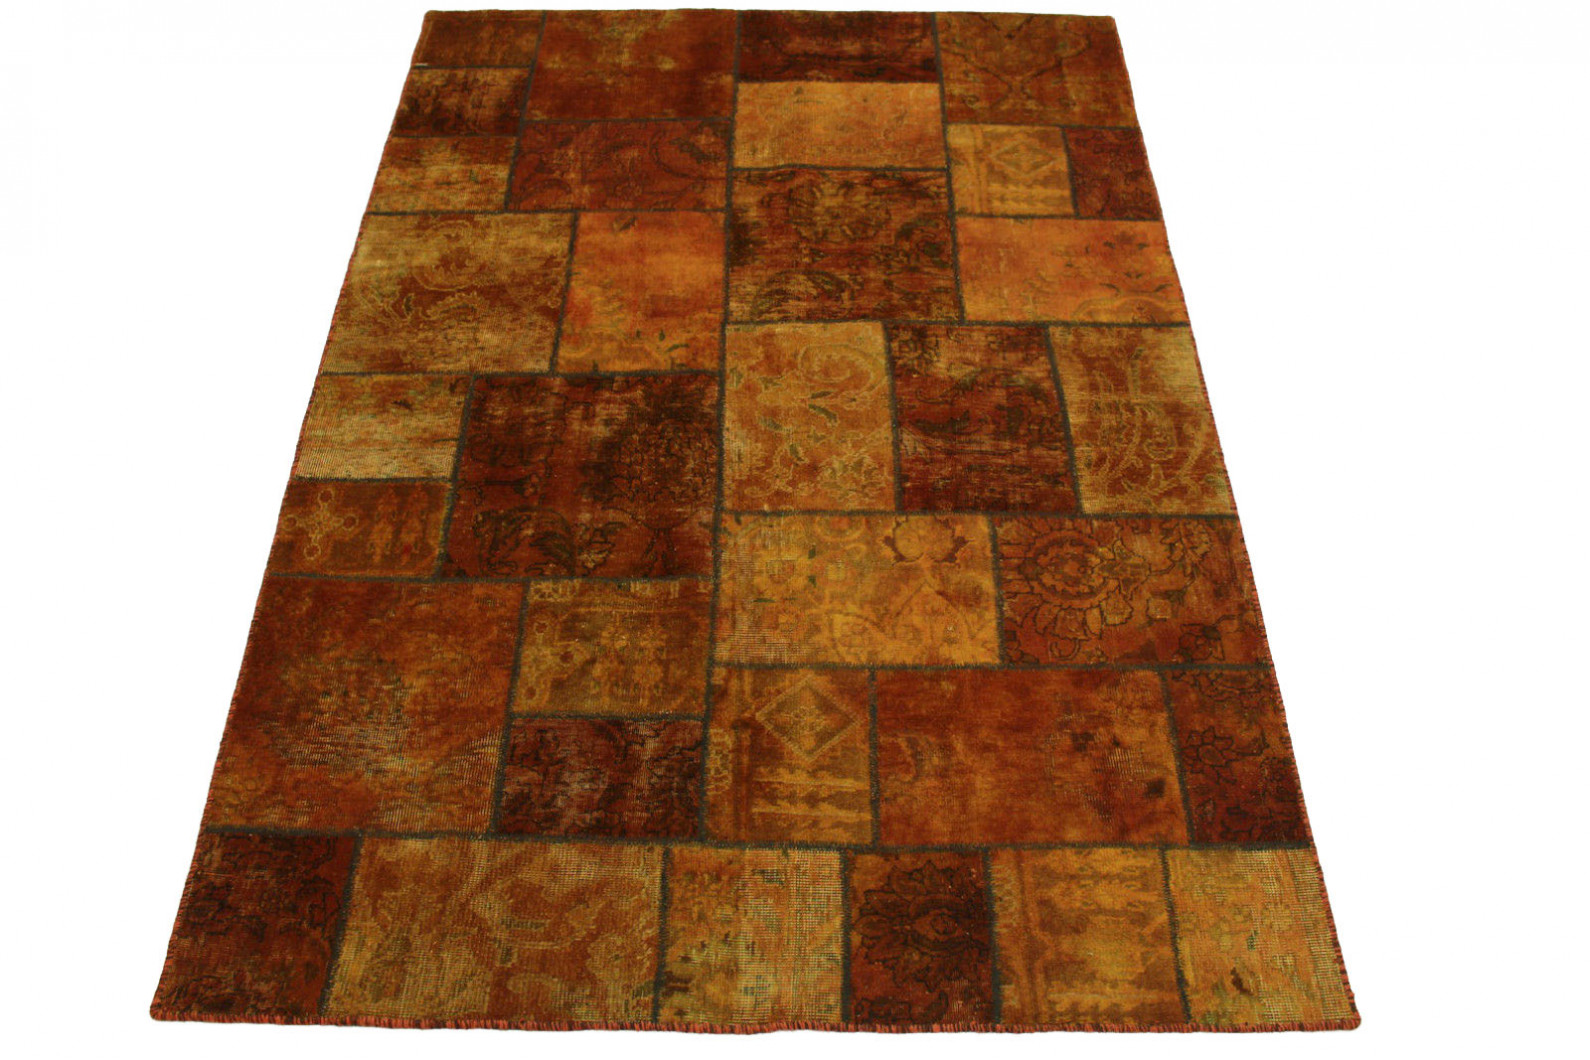 Teppich Orange Patchwork Teppich Orange Braun In 240x170cm 1001 2092